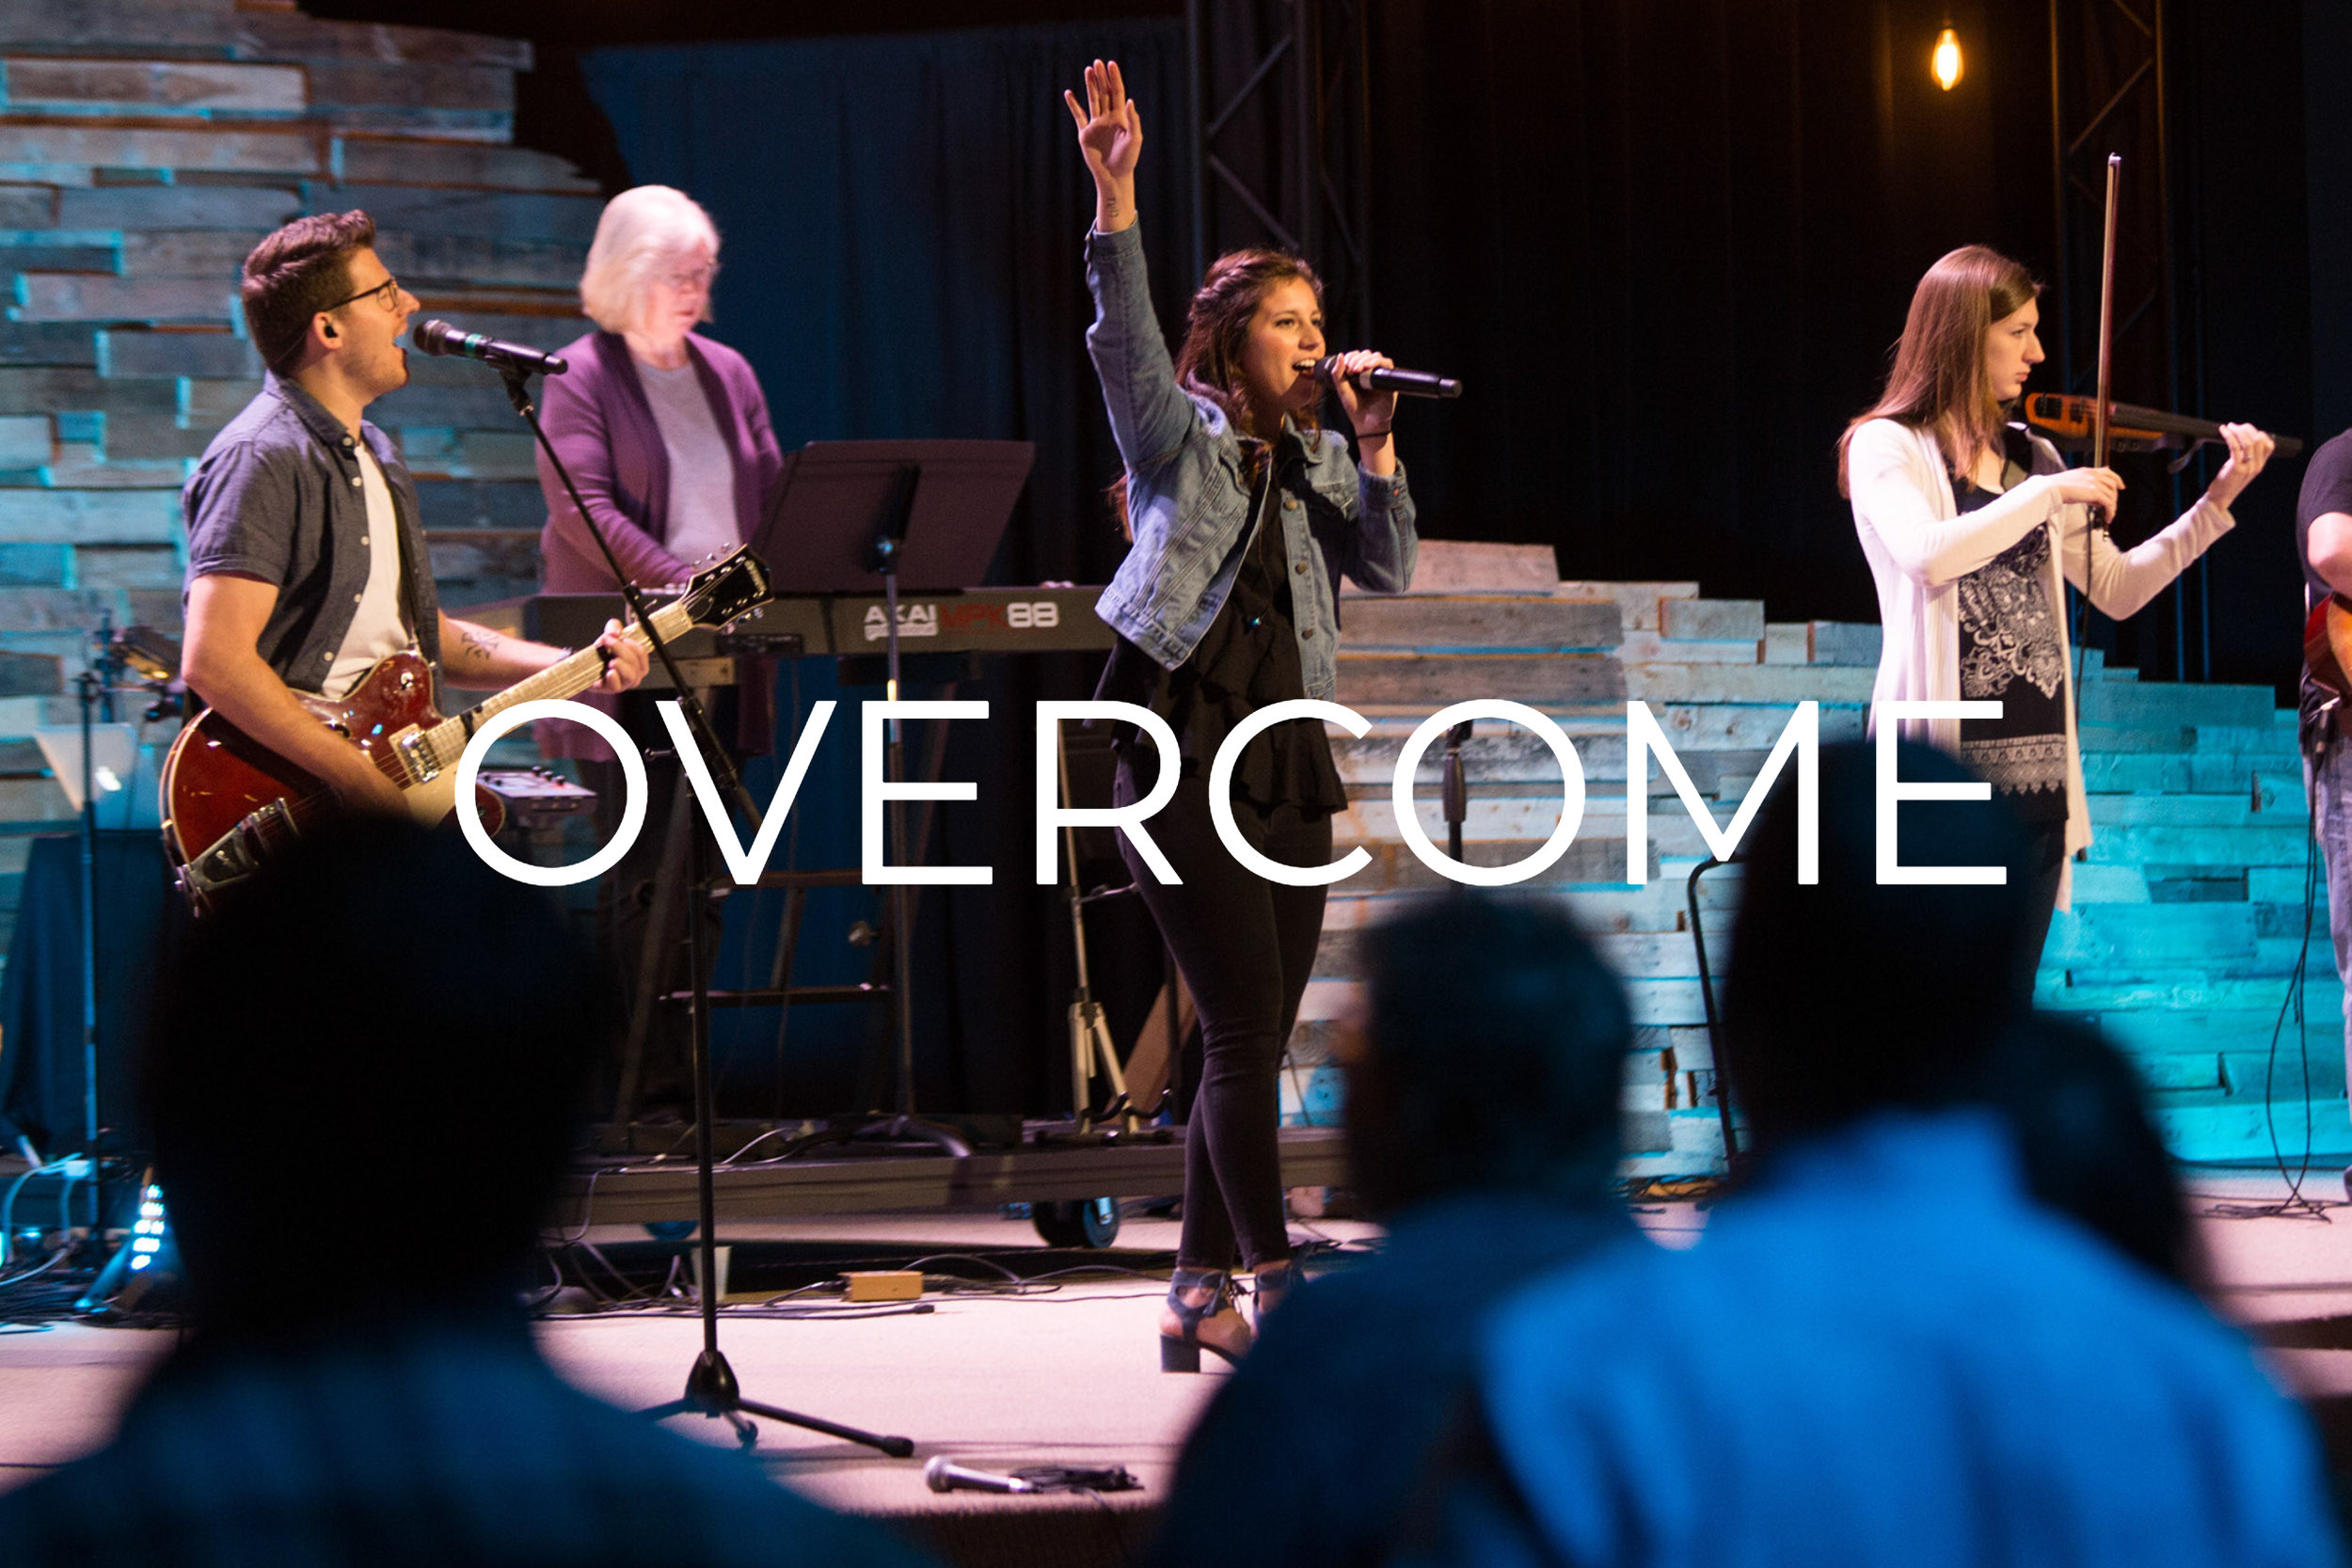 Overcome - Verse 1Now the darkness fadesInto new beginningsAs we lift our eyes to a hope beyondAll creation waitsWith an expectationTo declare the reign of the Lord our God ChorusWe will not be movedWhen the earth gives wayFor the risen One has overcomeAnd for every fearThere's an empty graveFor the risen One has overcome Verse 2Now the silence breaksIn the name of JesusAs the heavens cry let the earth respondAll creation shoutsWith a voice of triumphTo declare the reign of the Lord our God ChorusWe will not be movedWhen the earth gives wayFor the risen One has overcomeAnd for every fearThere's an empty graveFor the risen One has overcome Bridge x2He shall reign foreverStrongholds now surrenderFor the Lord our God has overcomeWho can be against us?Jesus our DefenderHe is Lord and He has overcome! Chorus x2We will not be movedWhen the earth gives wayFor the risen One has overcomeAnd for every fearThere's an empty graveFor the risen One has overcome...